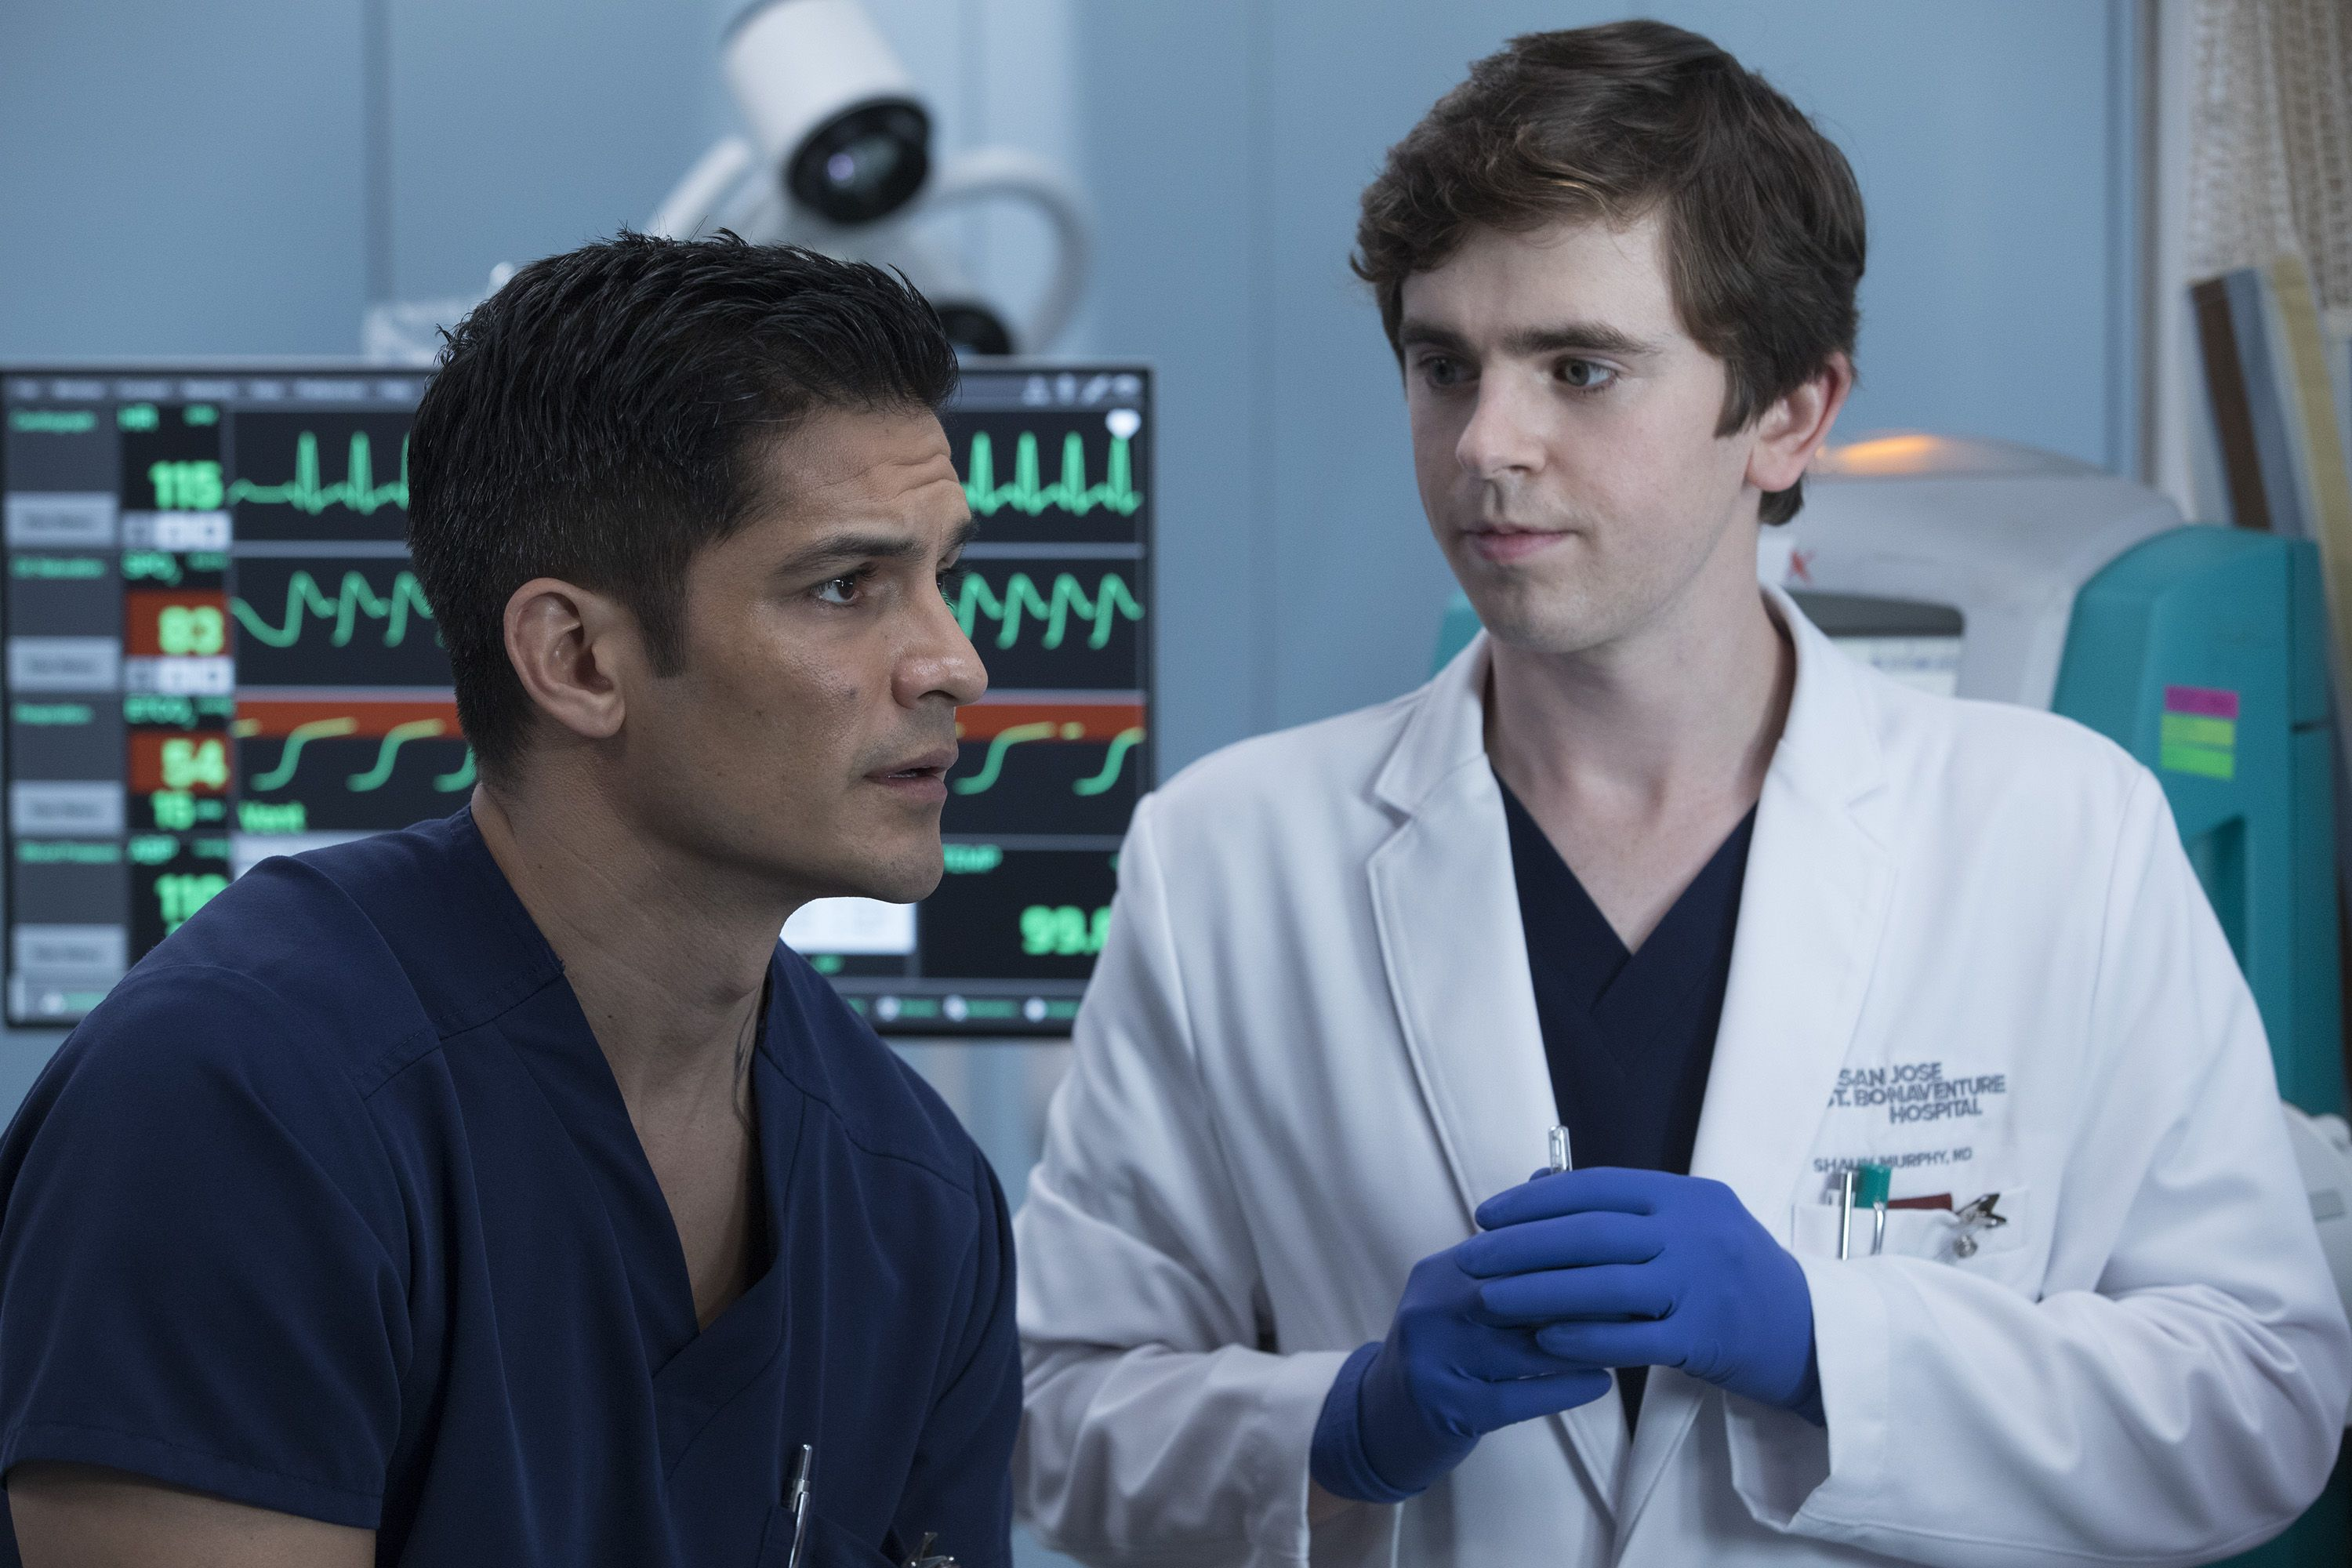 The Good Doctor Season 2 Cast Changes - New Actors on The Good Doctor